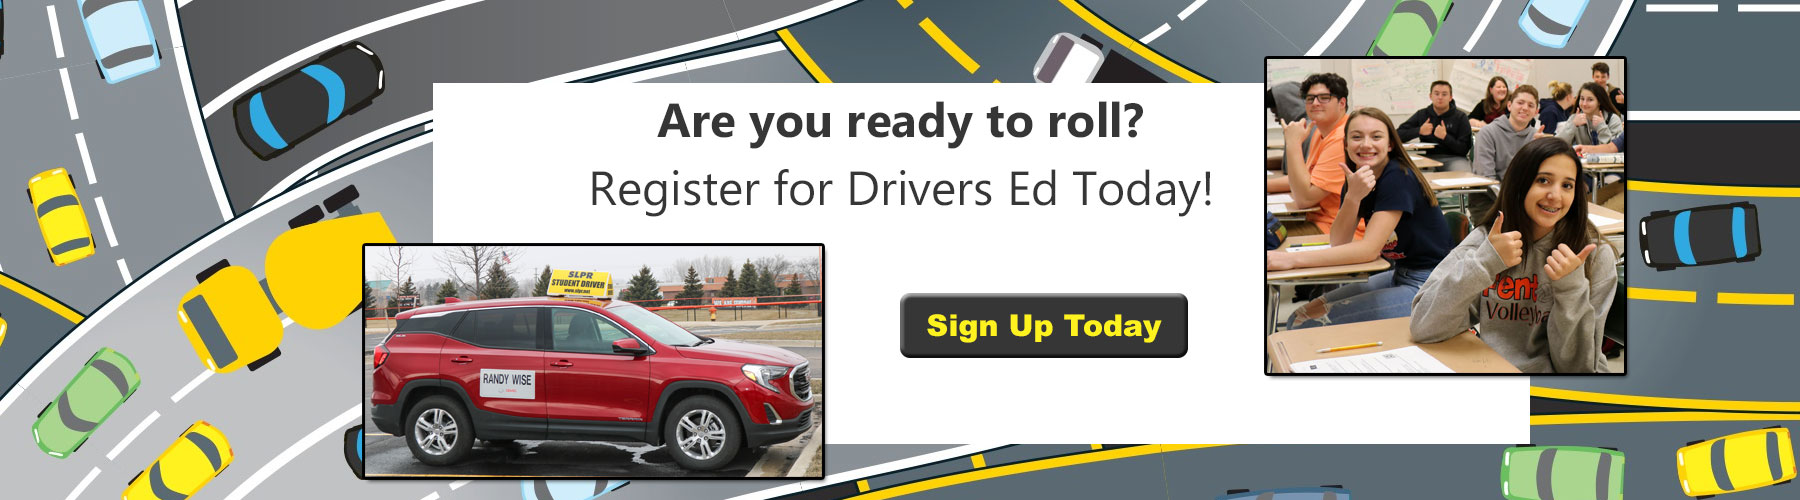 Sign Up for Drivers Education